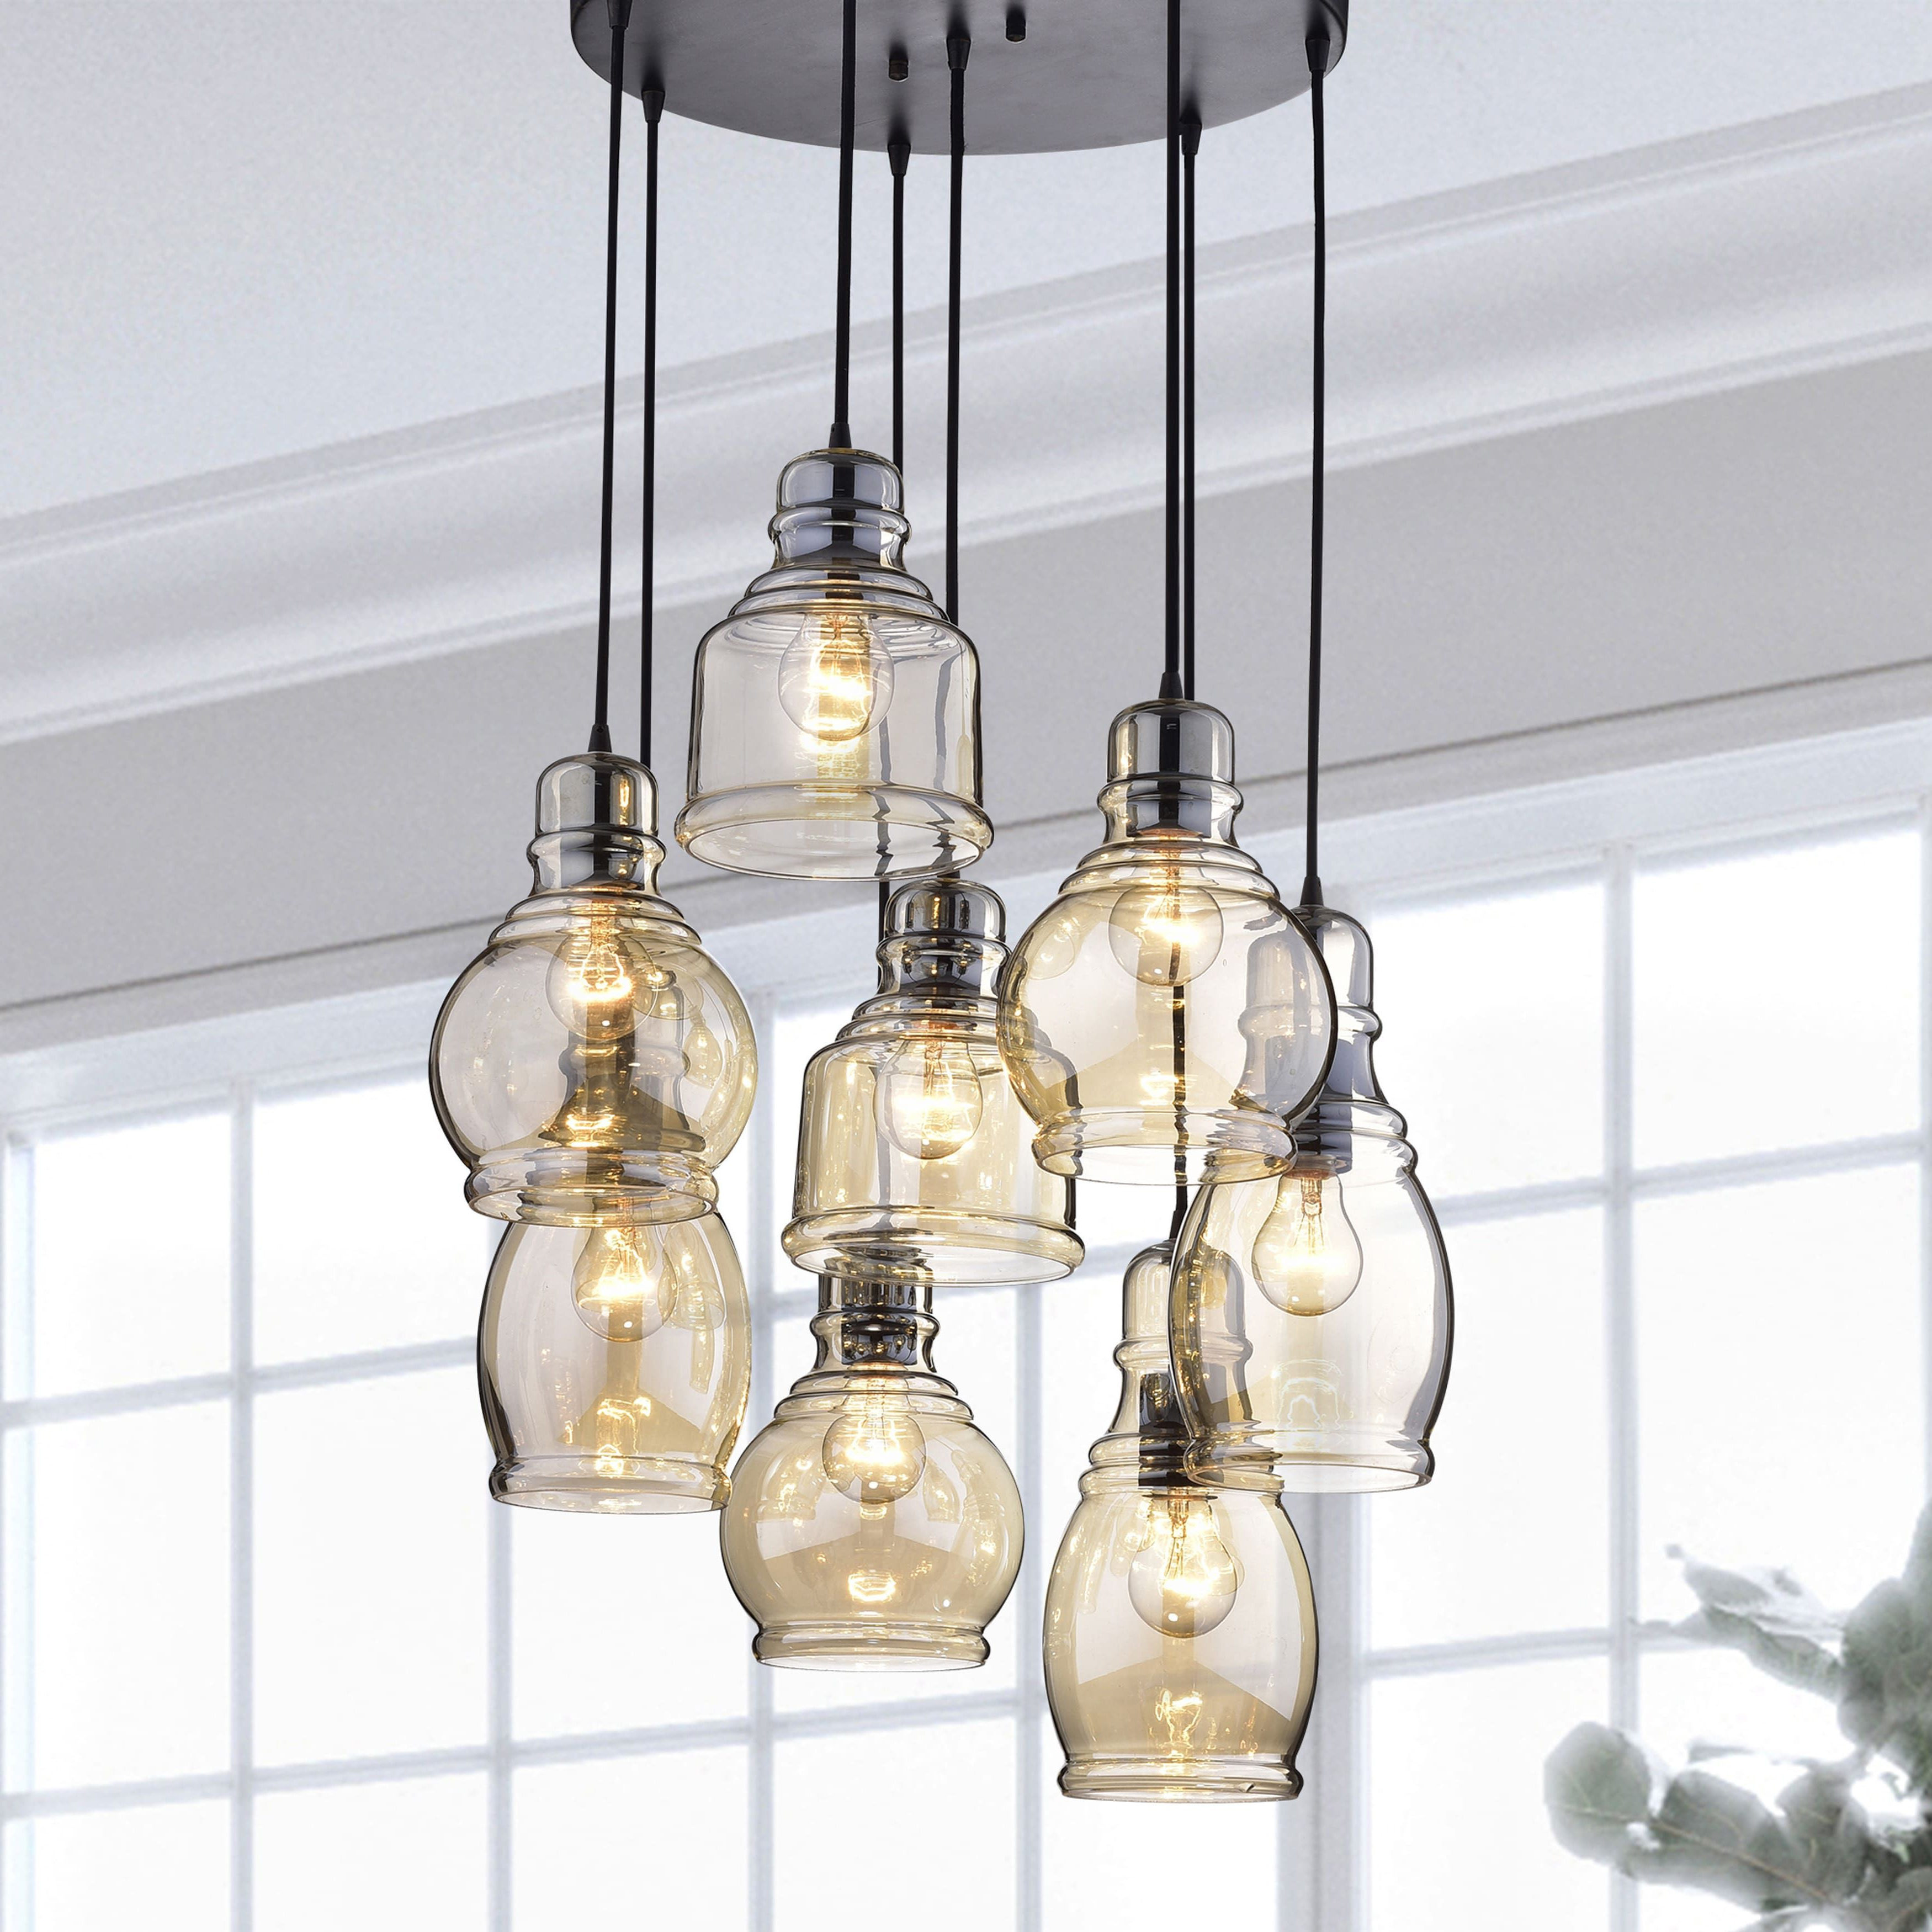 Pruett Cognac Glass 8 Light Cluster Pendants With Regard To Famous Mariana Cognac Glass Cluster Pendant In Antique Black Finish (View 16 of 20)